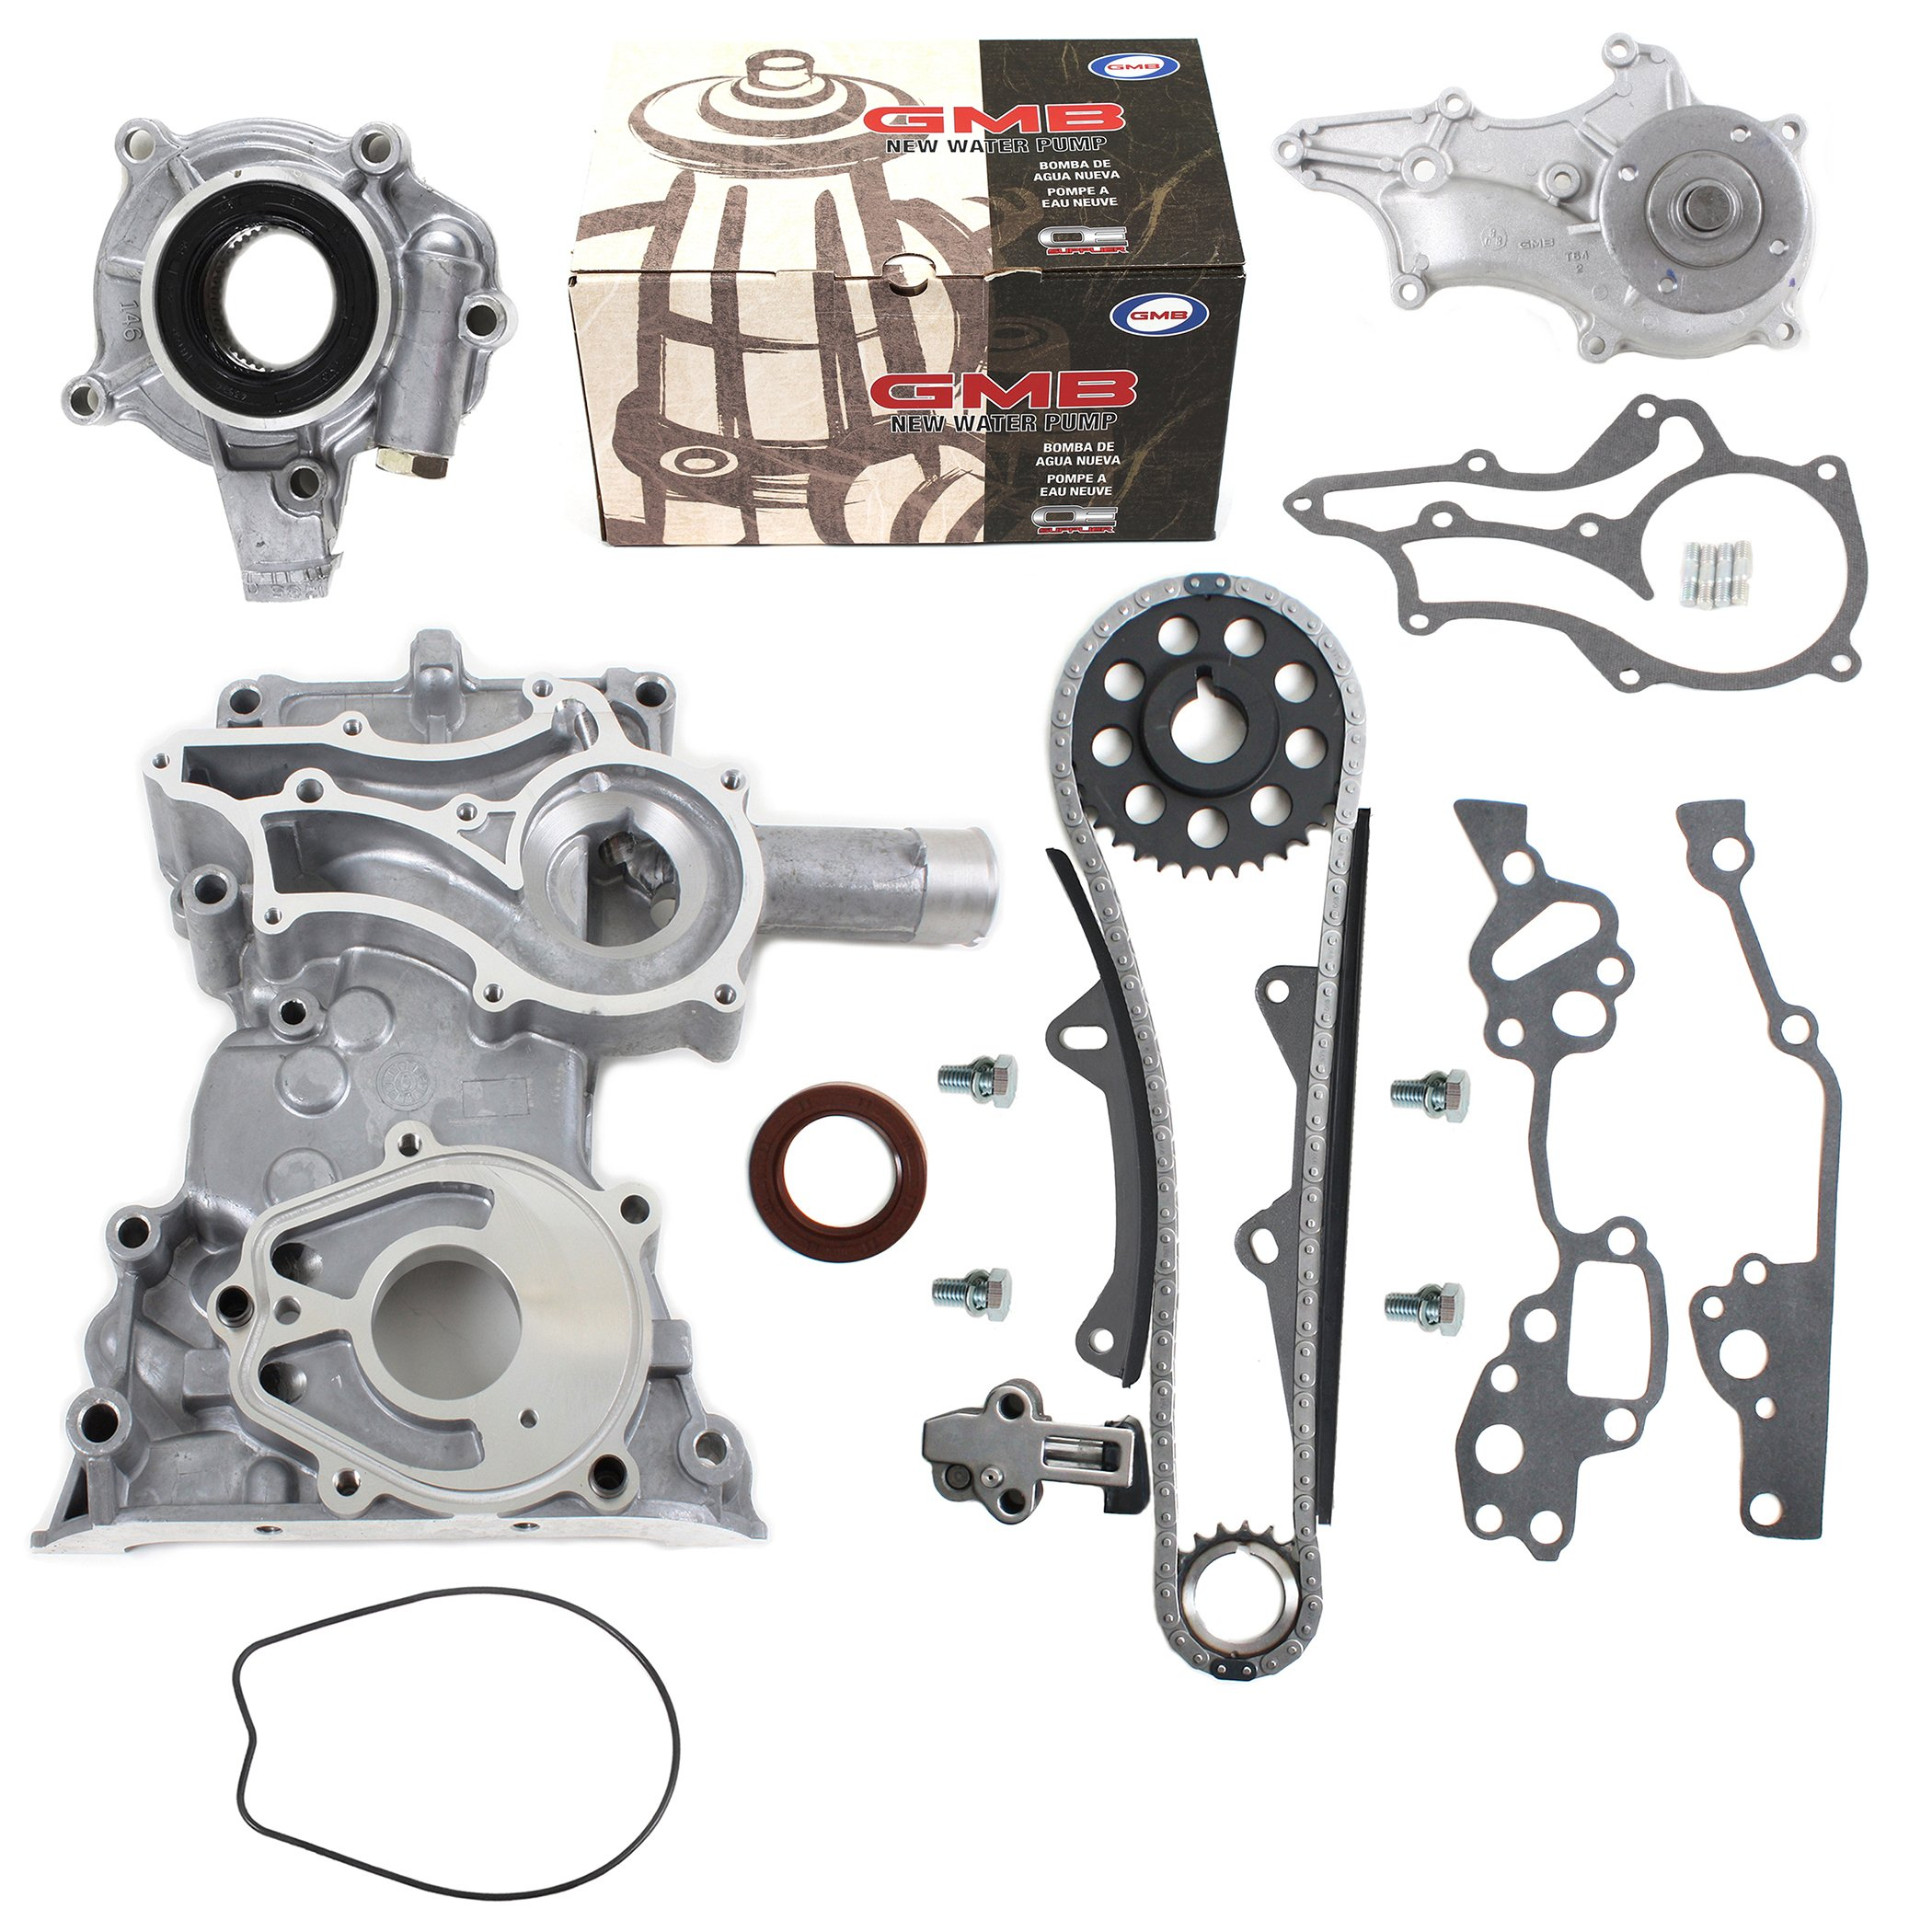 Cheap 22re Timing Chain, find 22re Timing Chain deals on line at